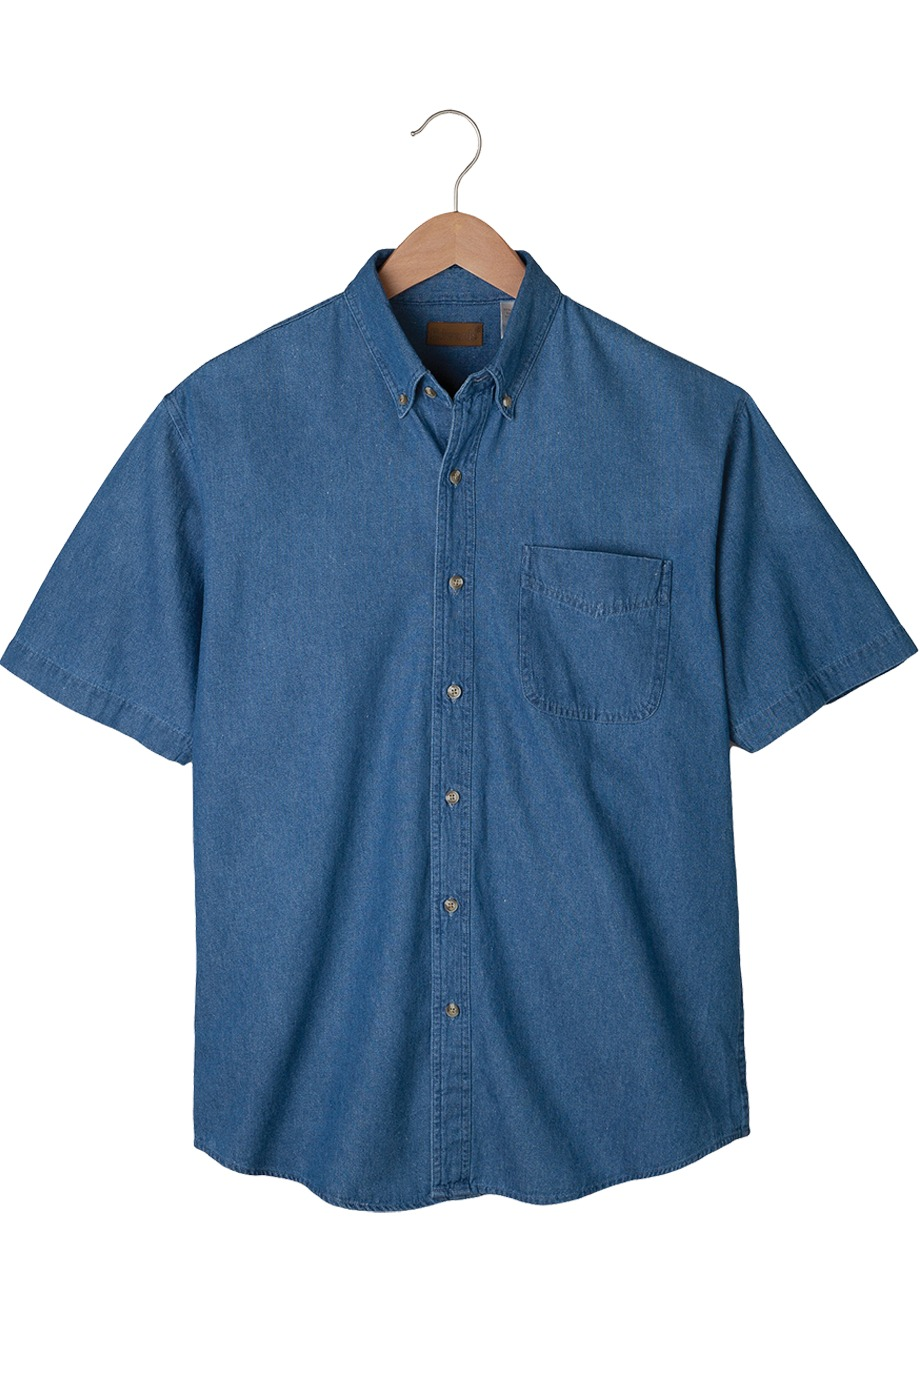 Edwards Garment 1013 - Men's Mid-Weight Short Sleeve ...